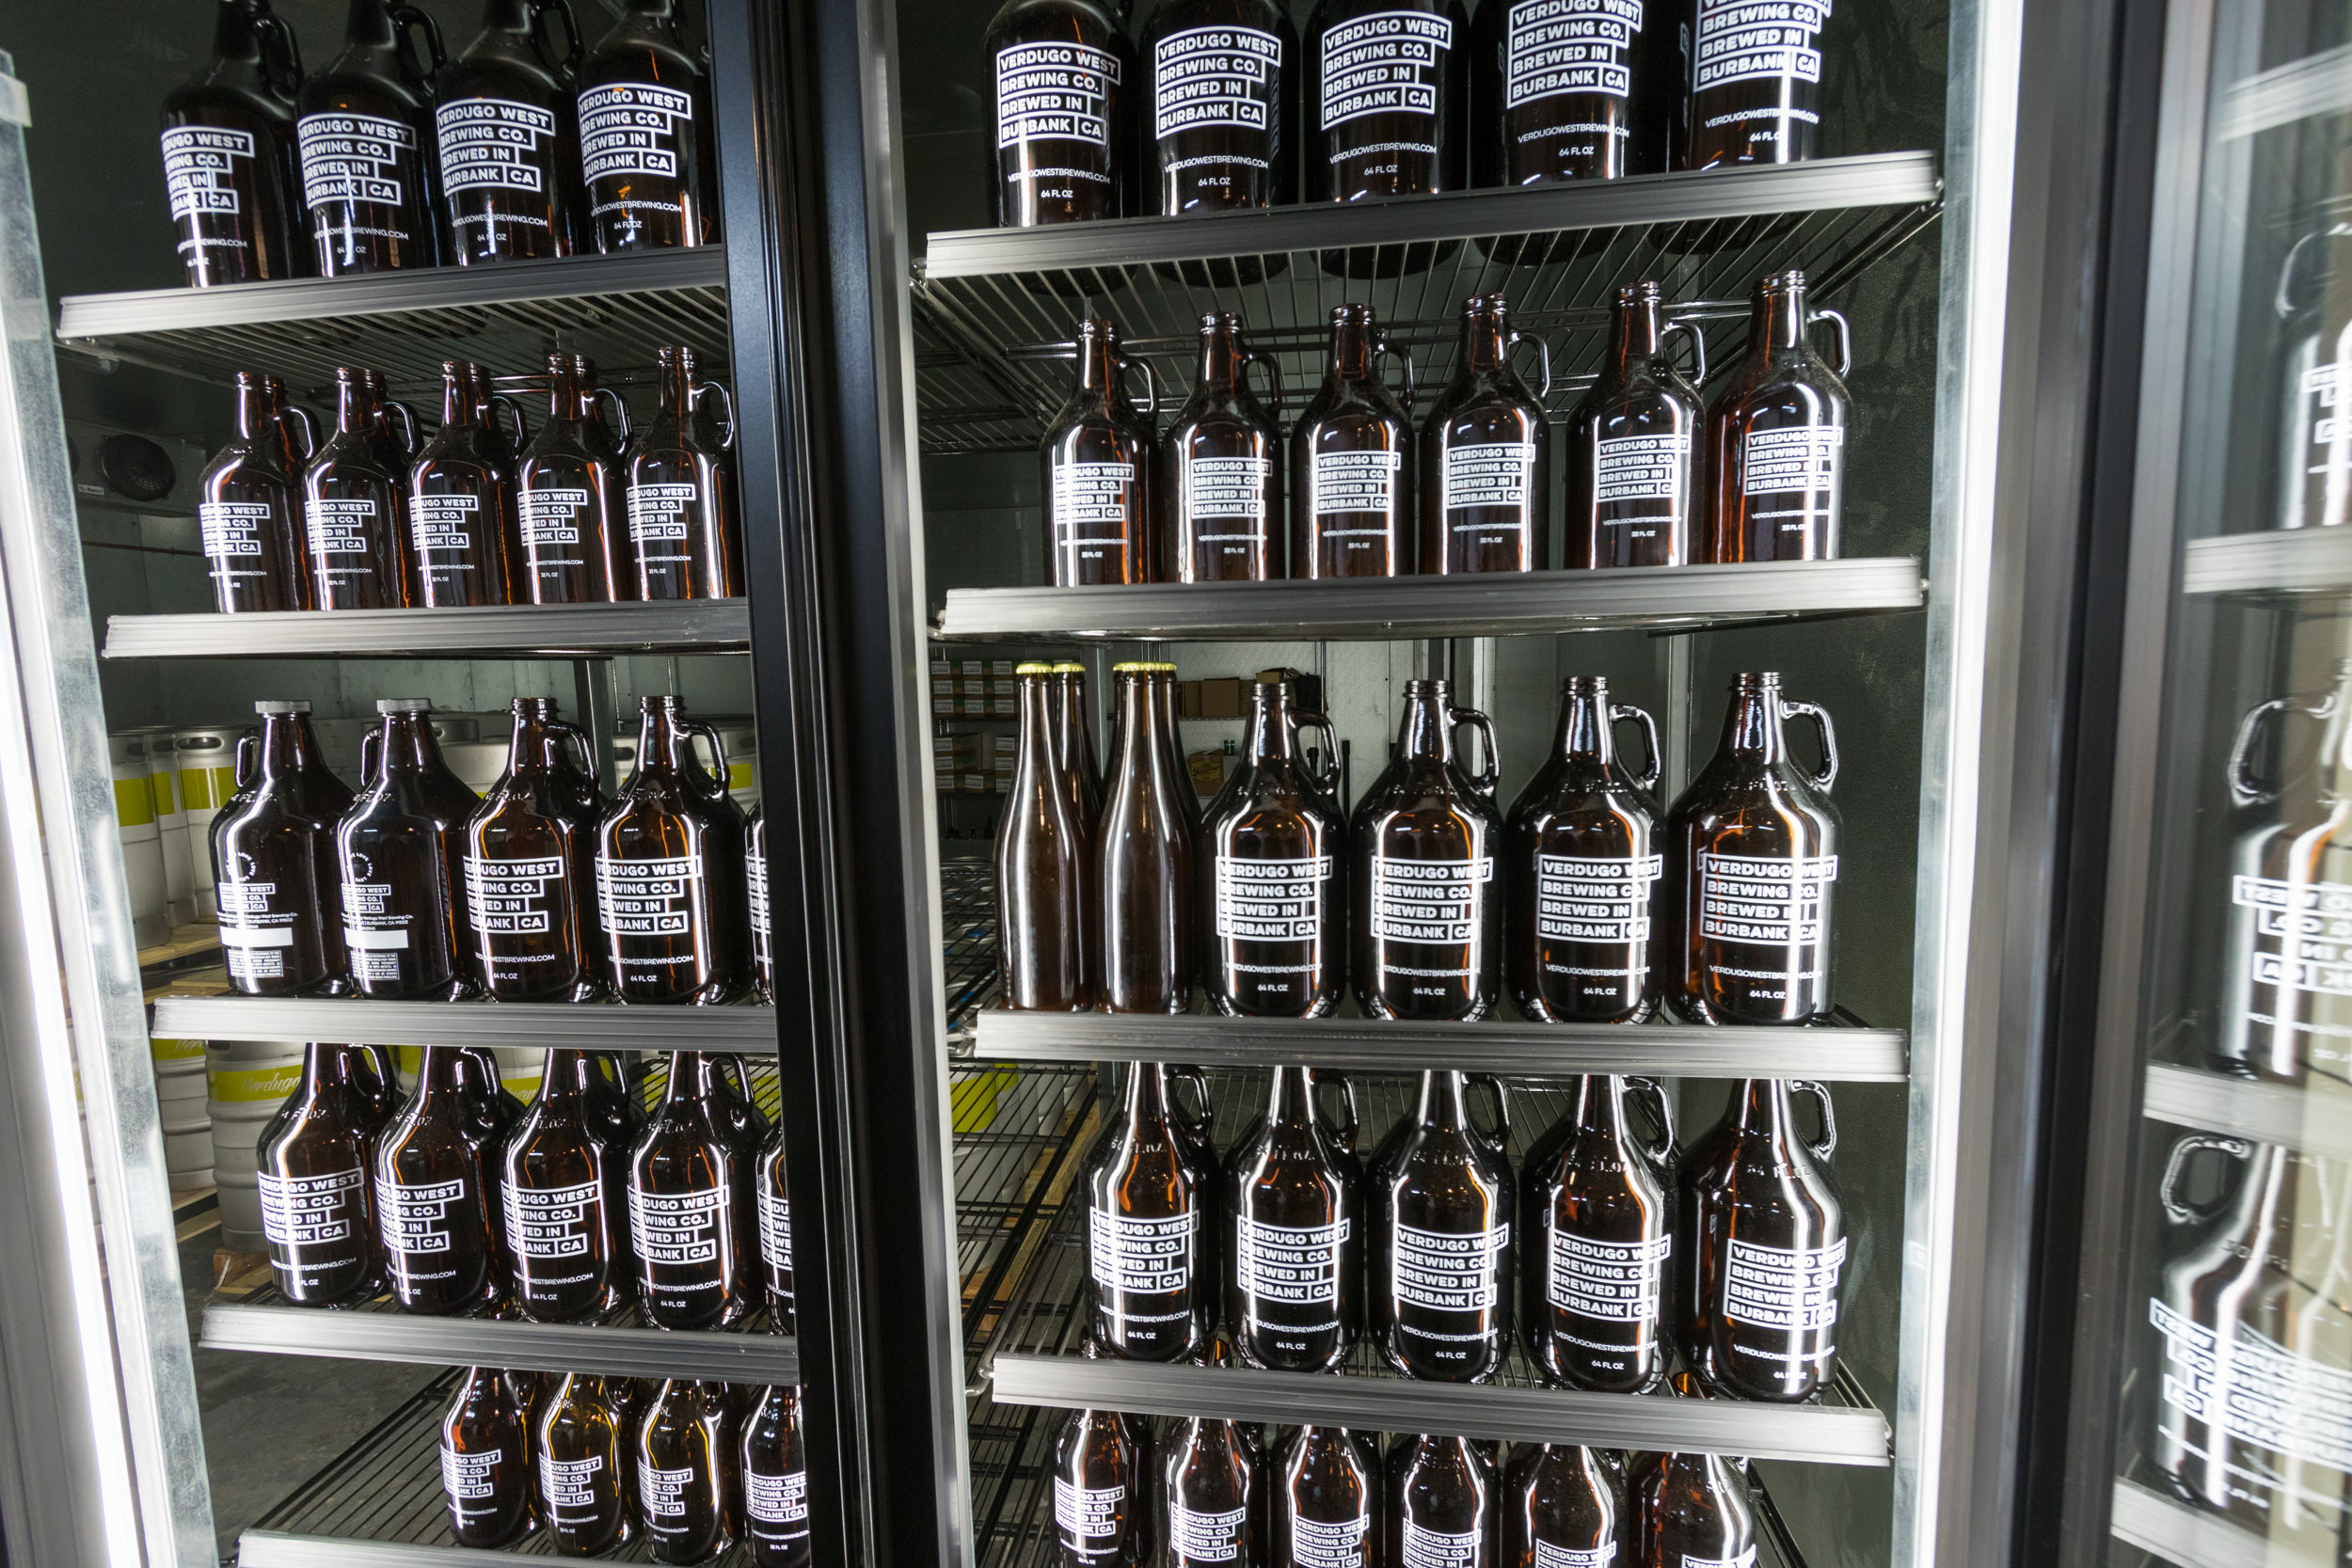 Brown Casks of Beer in a Refrigerator